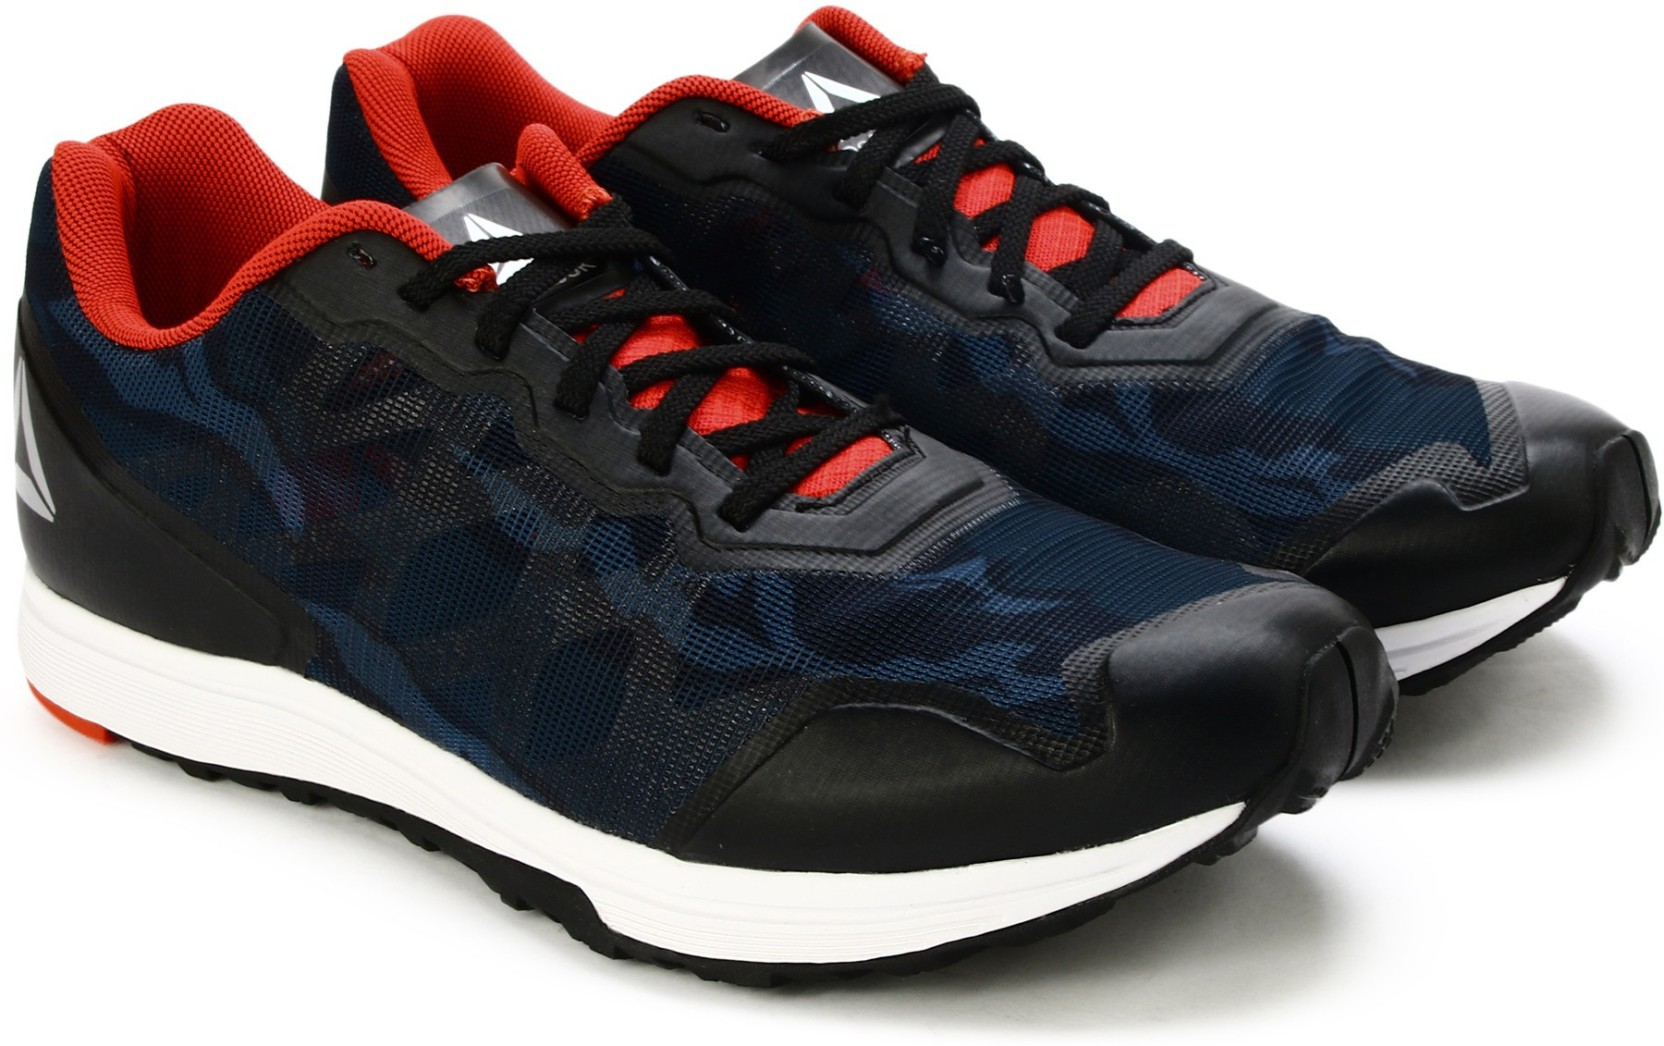 REEBOK SPRINT TRAIN Running Shoes For Men - Buy BLACK GLOW RED METIL ... a1a74dcb2